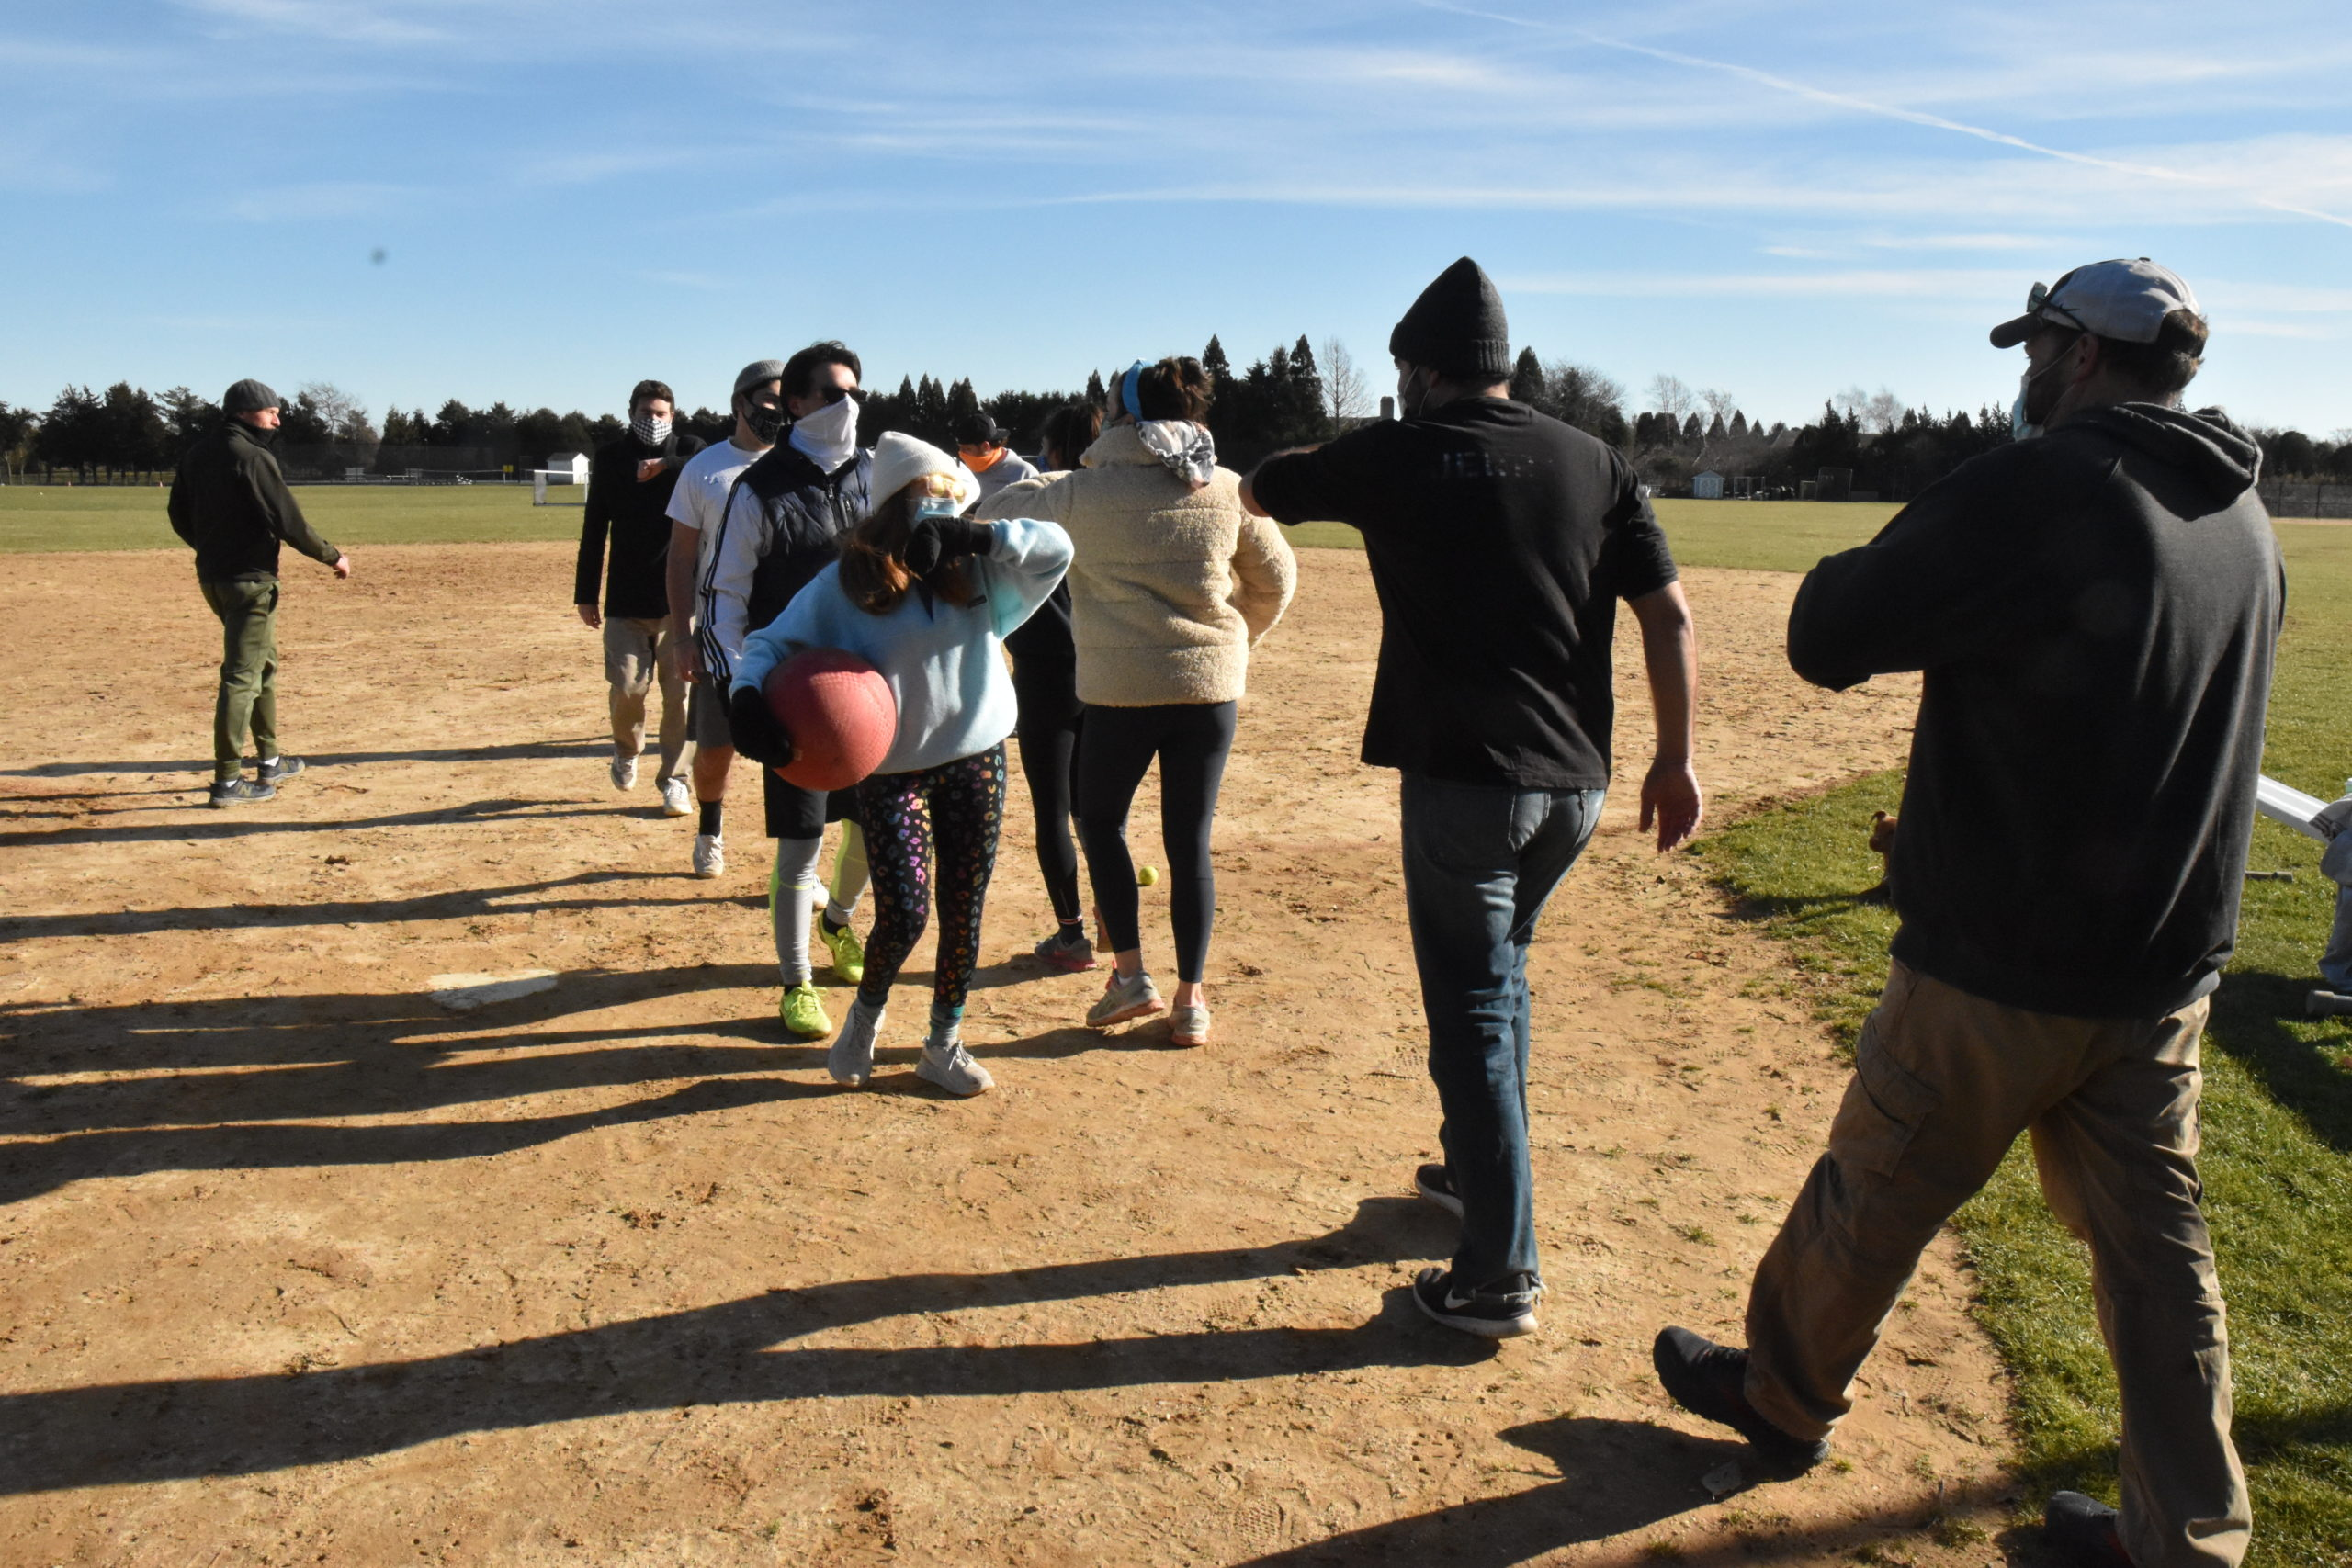 Instead of high-fives, it was elbow bumps after the Southampton Village team bested the Southampton Town team in a kickball game at Southampton Intermediate School on Sunday. STEPHEN J. KOTZ